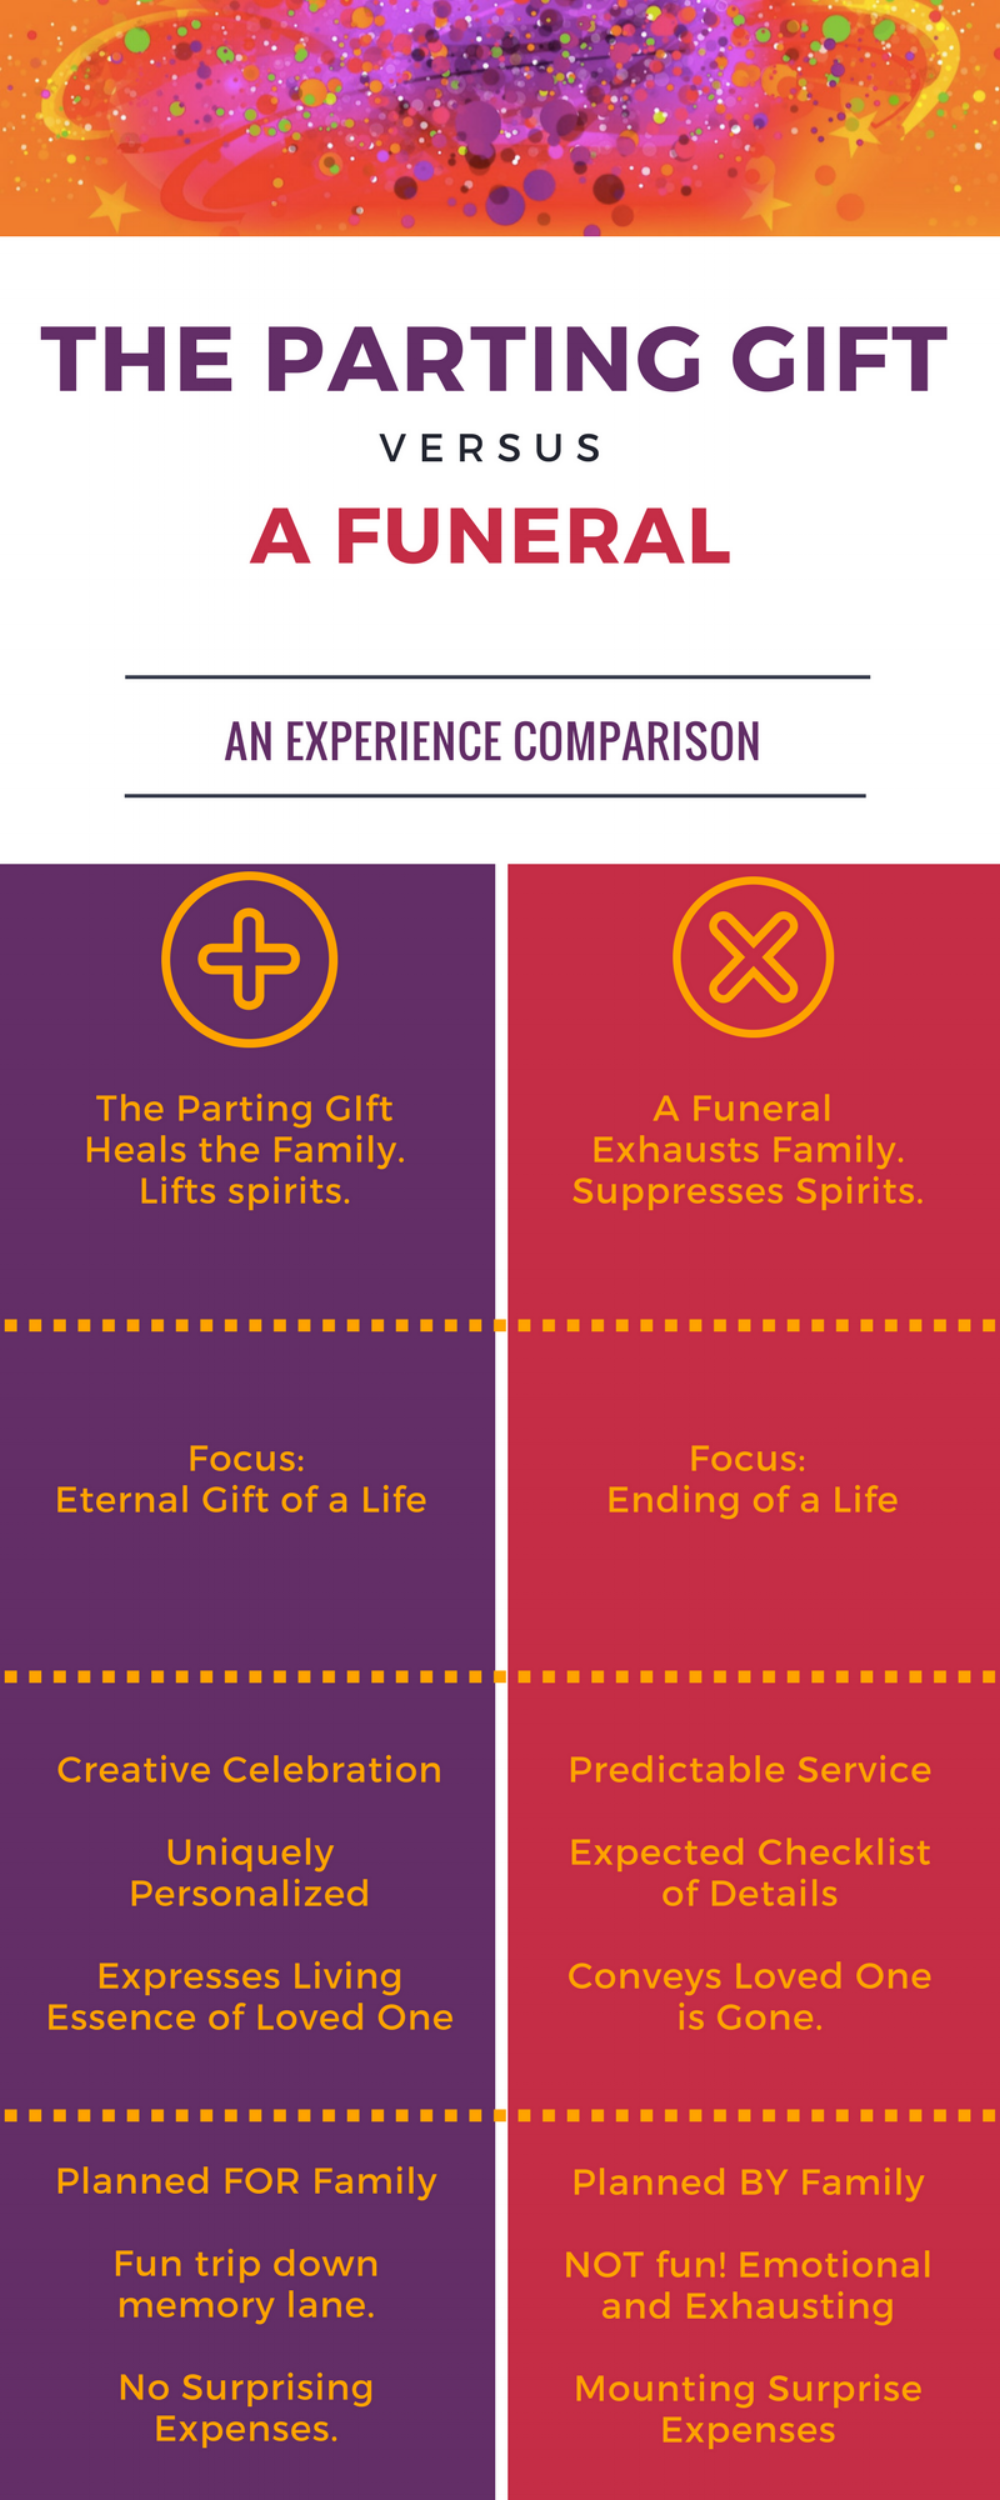 Parting Gift%2FFuneral Infographic.png